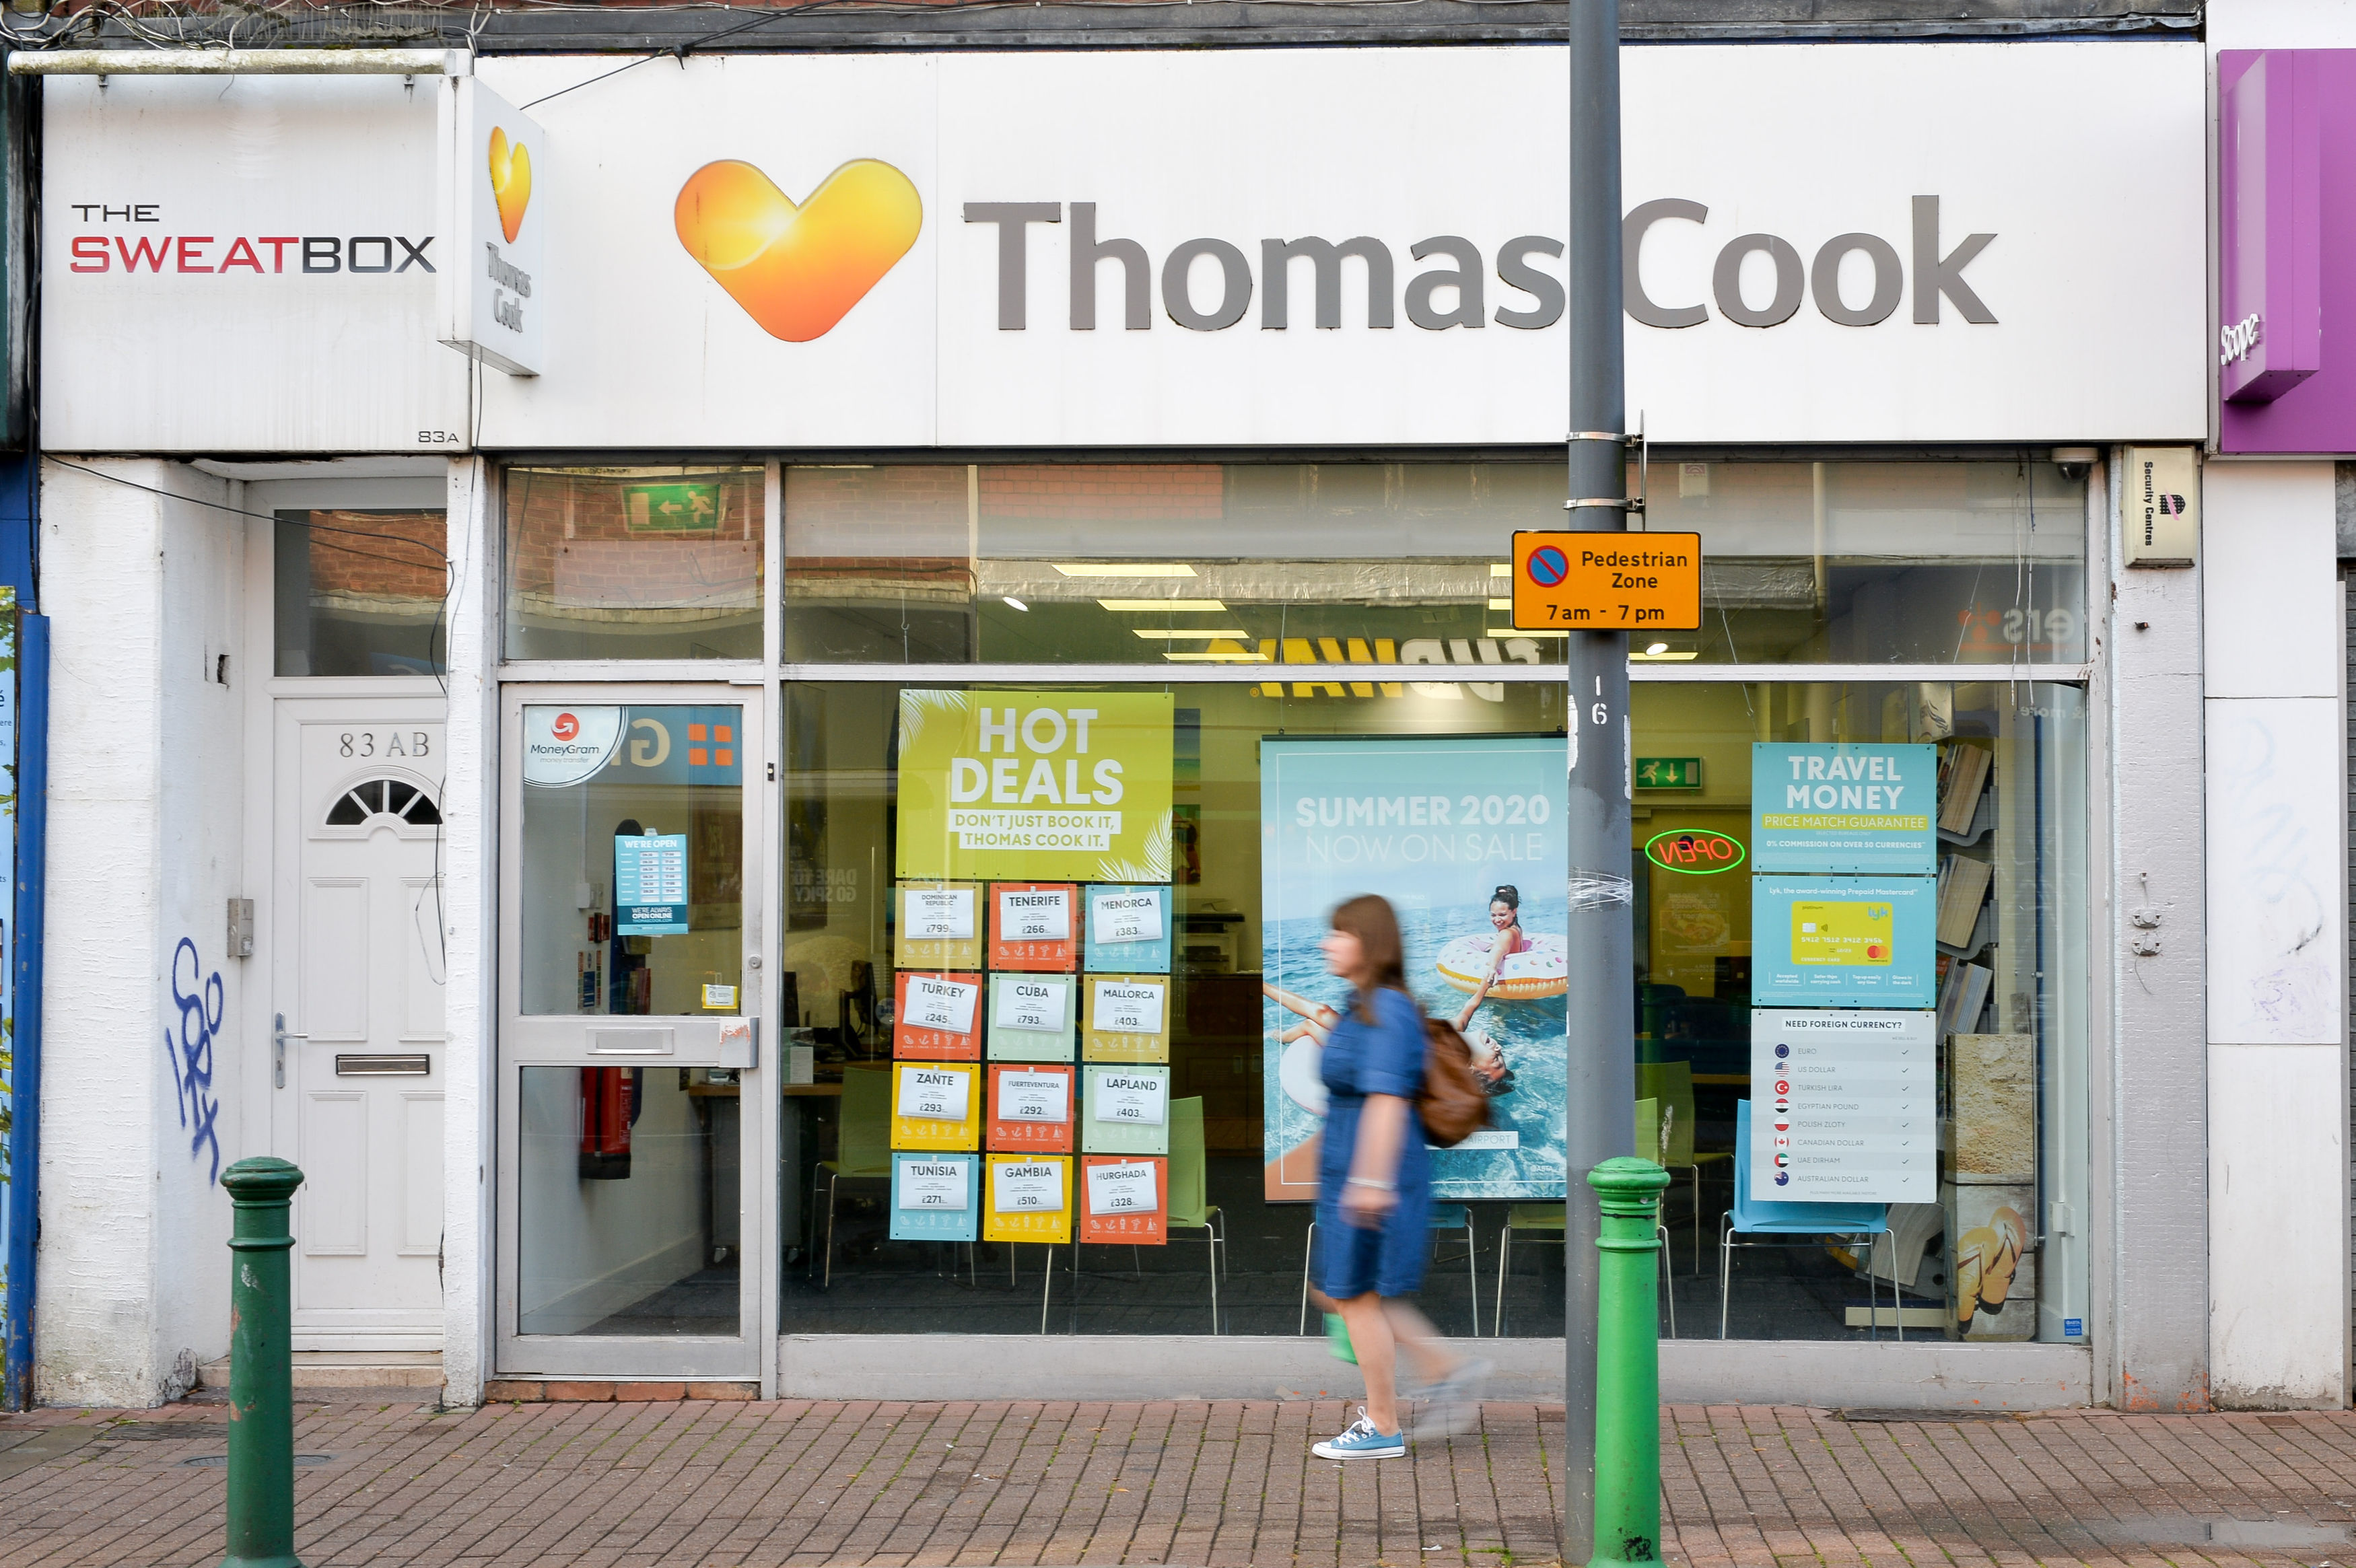 Thomas Cook executives who oversaw the company's collapse are hired again as he reboots as an online travel agent - The Sun